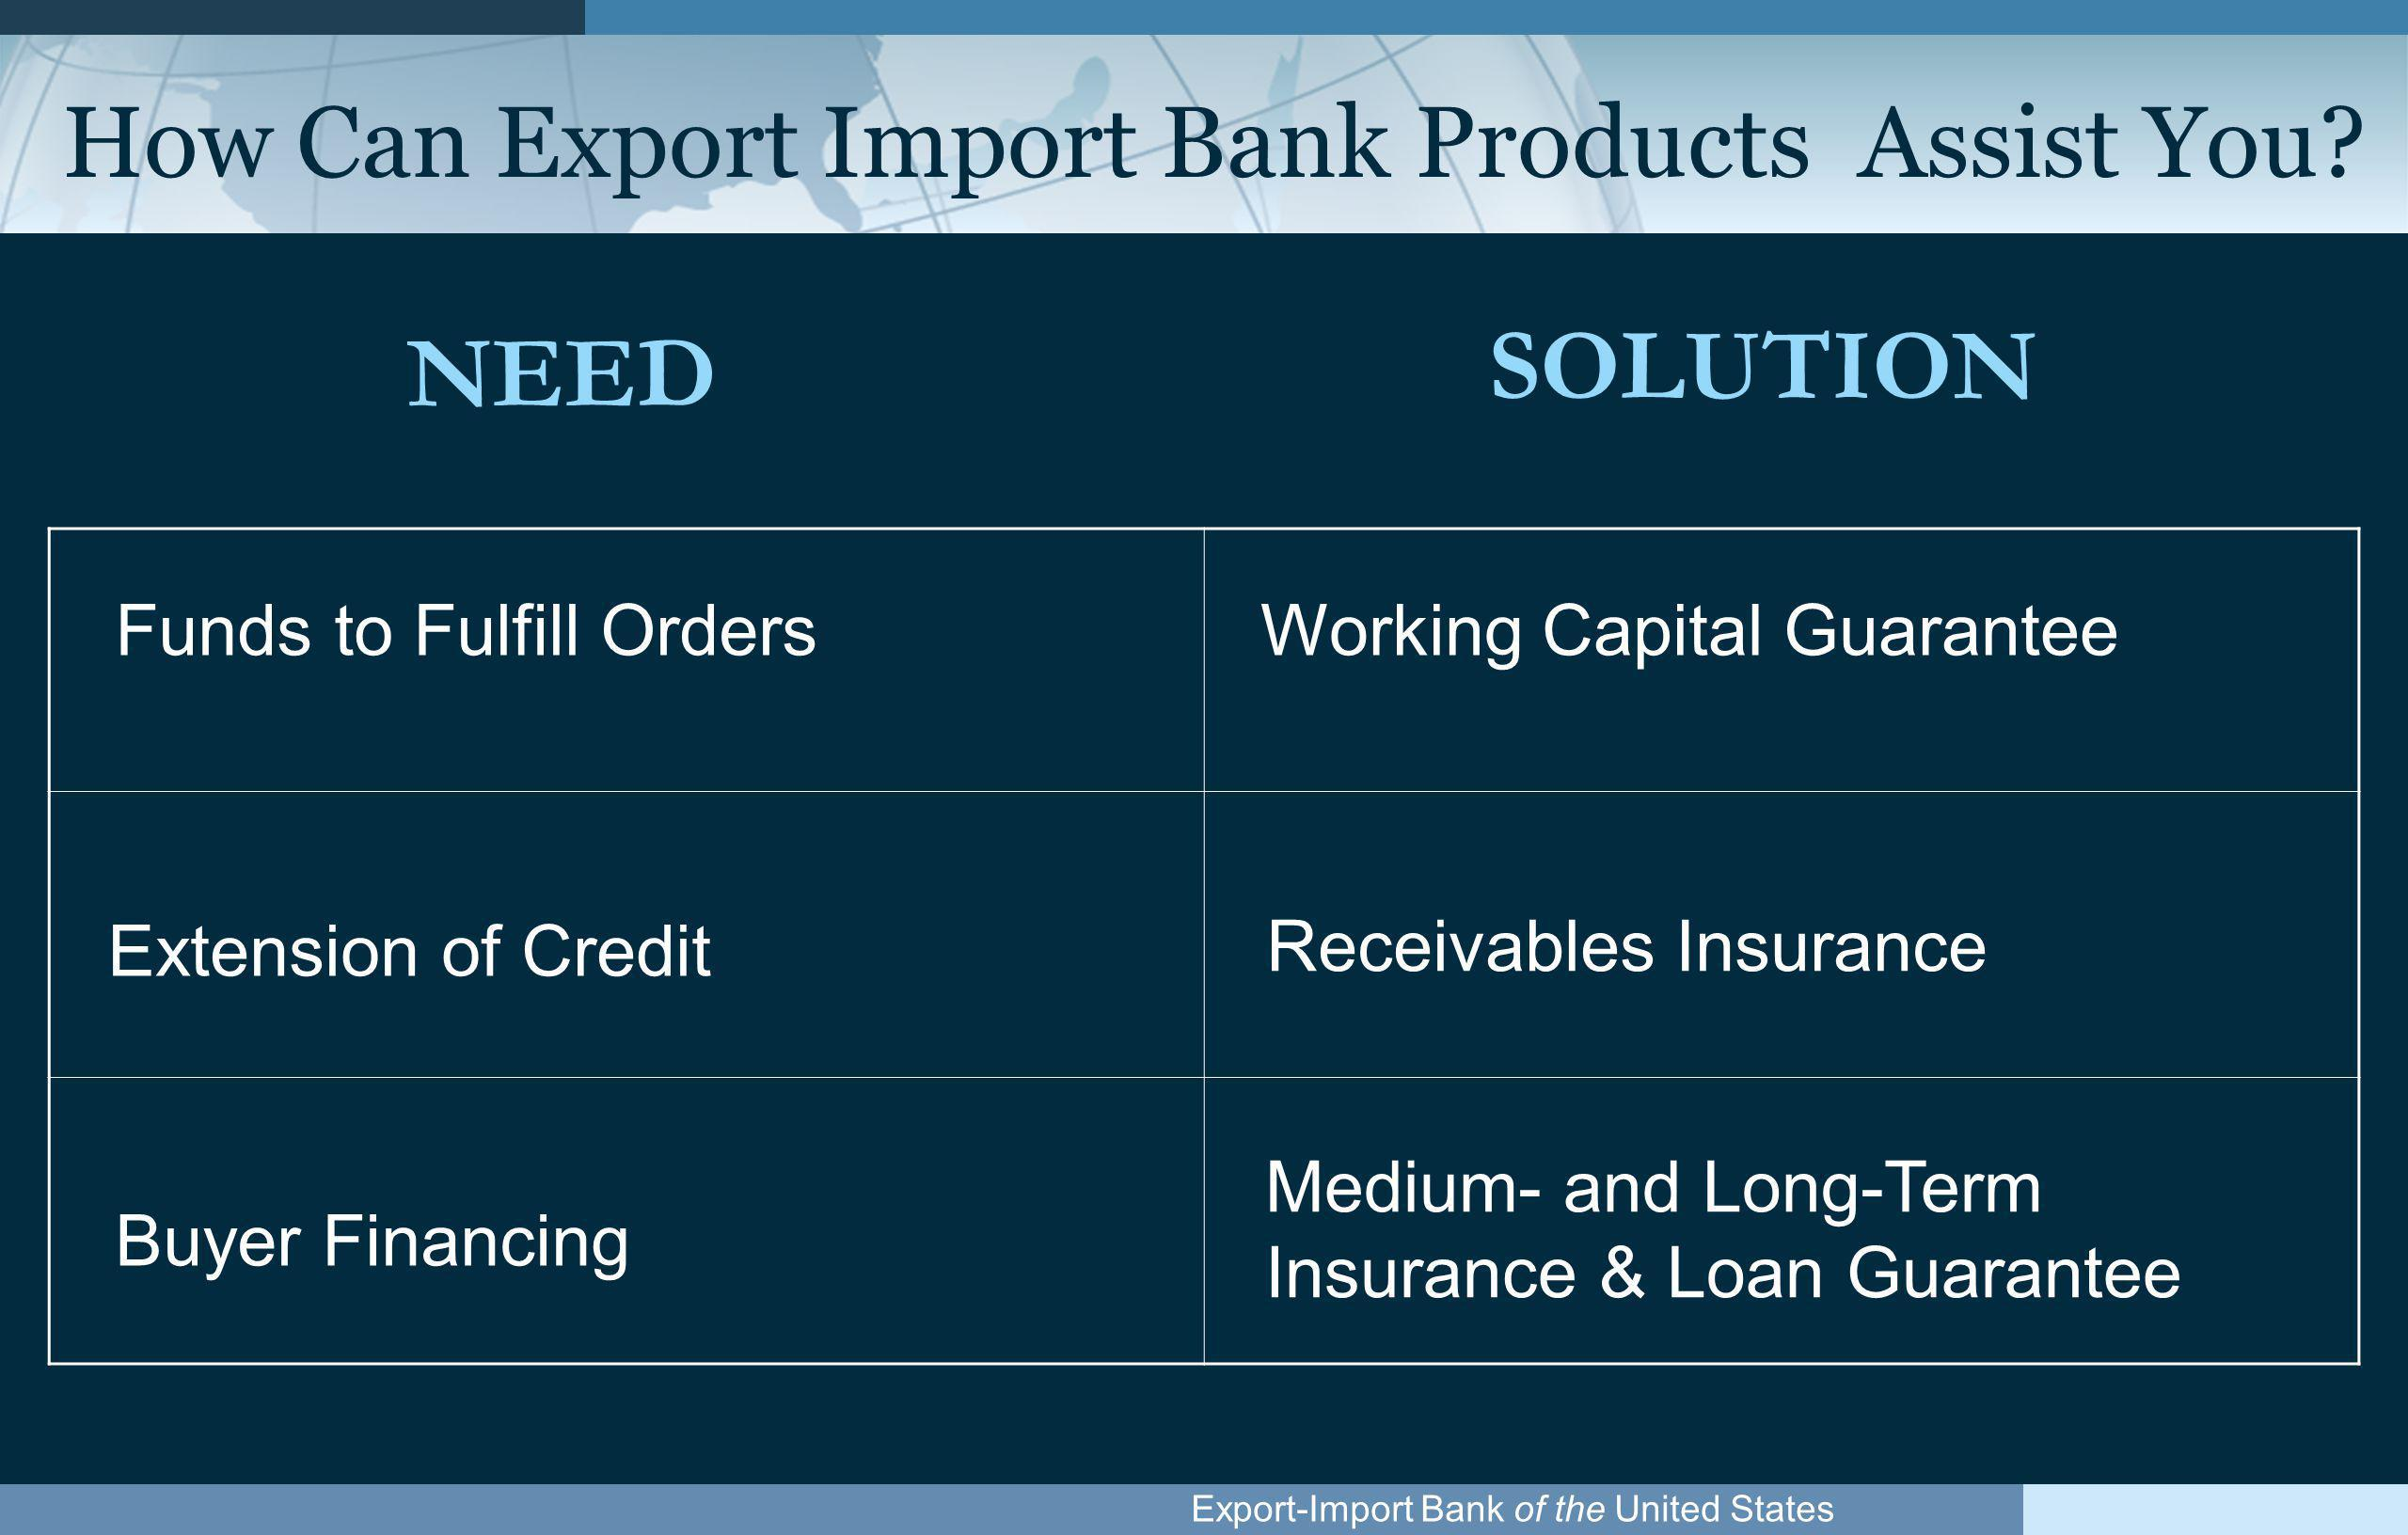 Export-Import Bank of the United States NEED SOLUTION Extension of Credit Working Capital GuaranteeFunds to Fulfill Orders Buyer Financing Medium- and Long-Term Insurance & Loan Guarantee Receivables Insurance How Can Export Import Bank Products Assist You